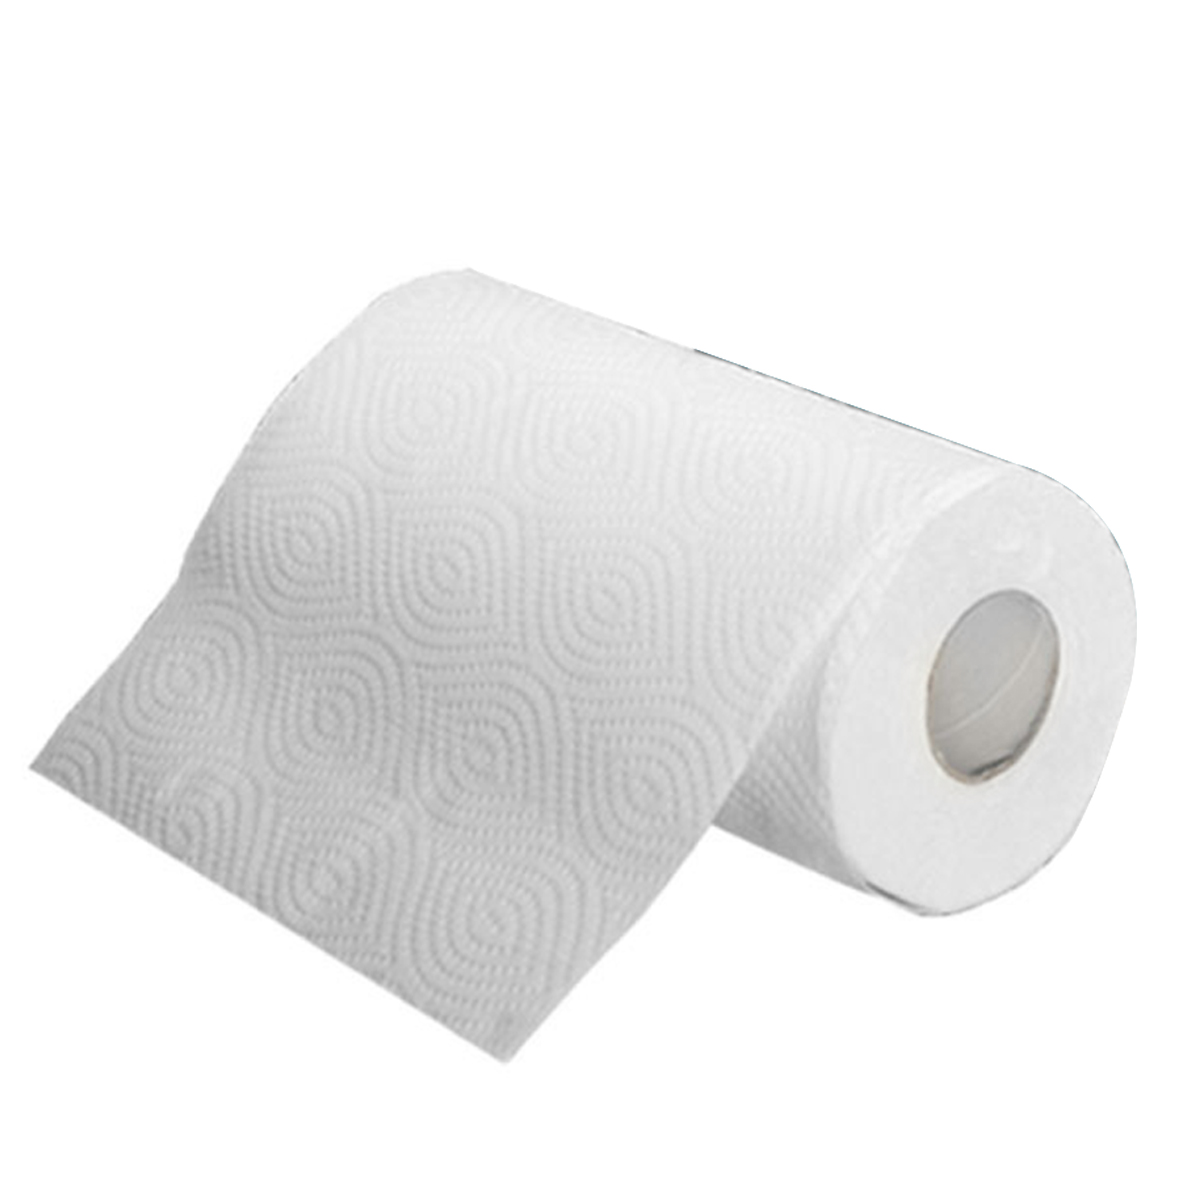 2 Roll Kitchen Paper Towels Thickened Design Water Oil Absorbent Roll Toilet Paper 2-Ply 75 Sheets Per Roll​ Wood Pulp Paper